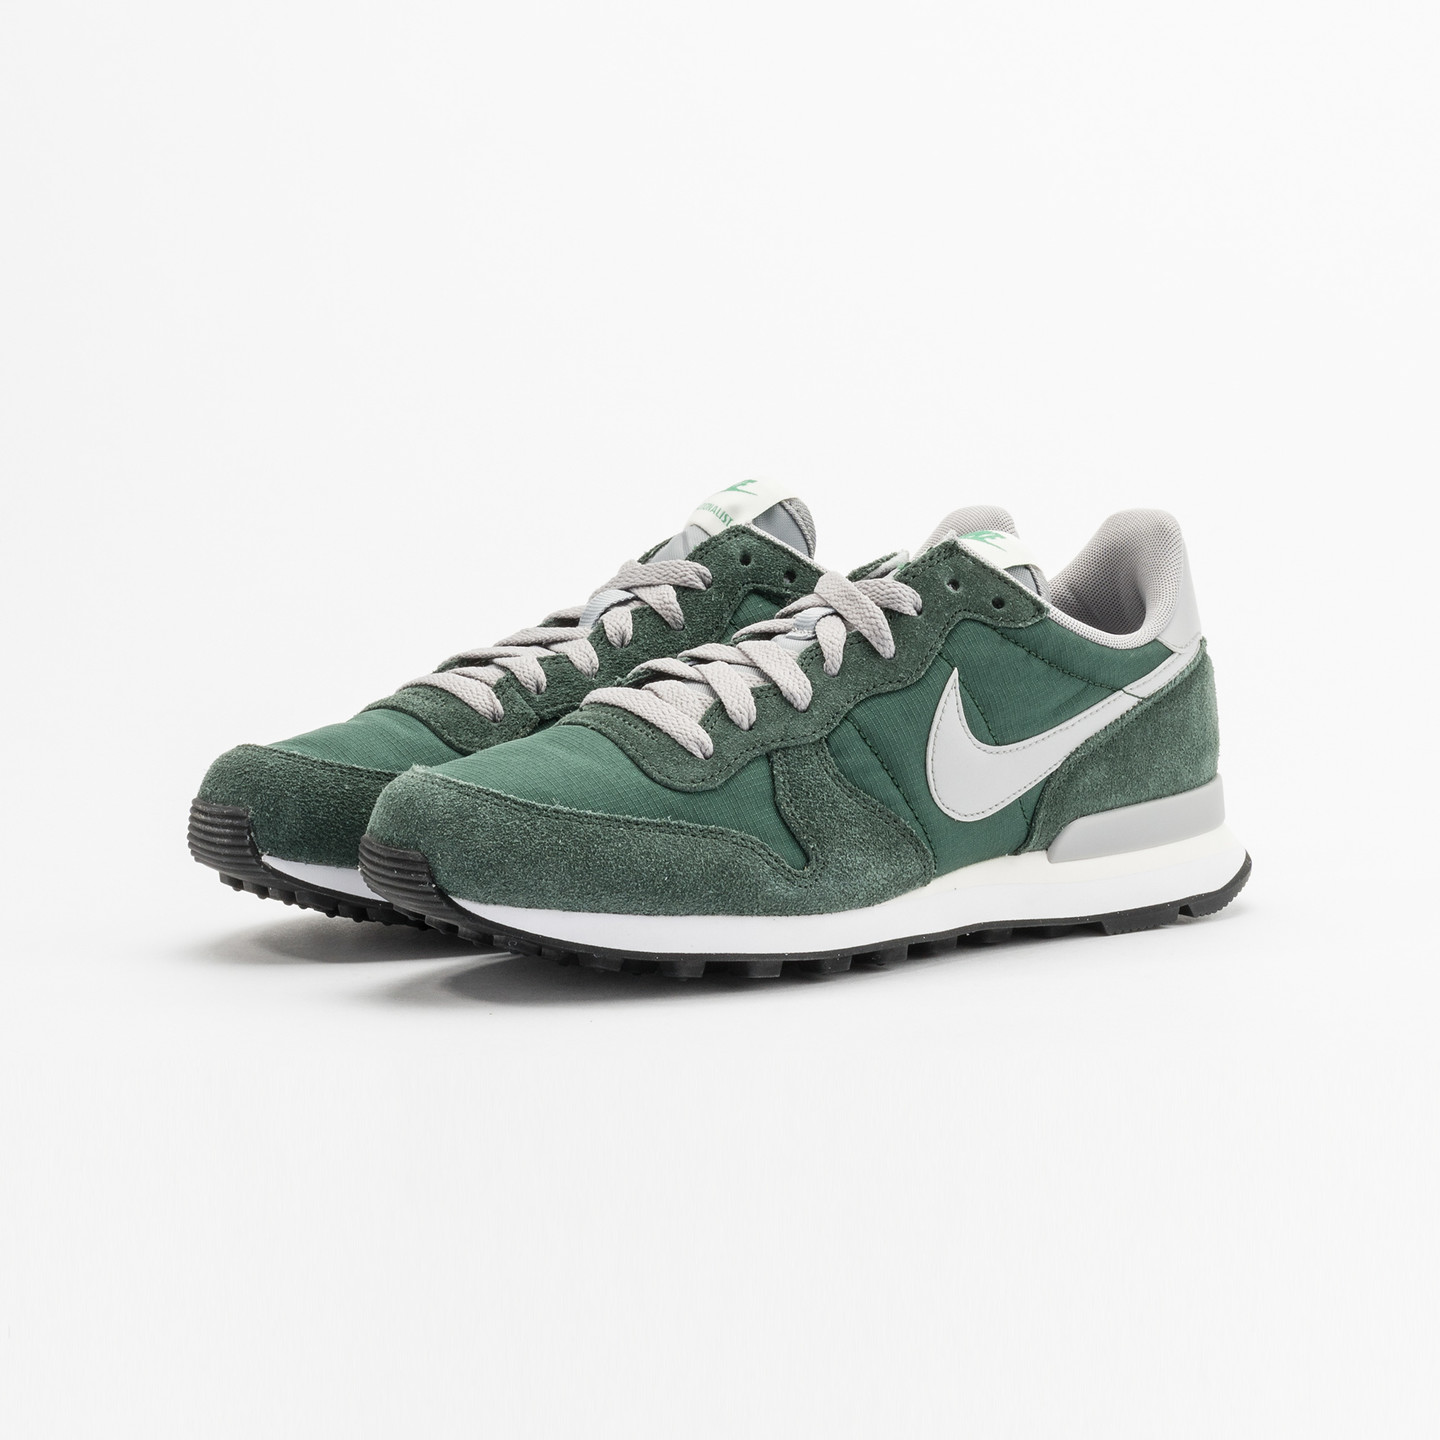 Nike Internationalist Gorge Green / Matte Silver 828041-300